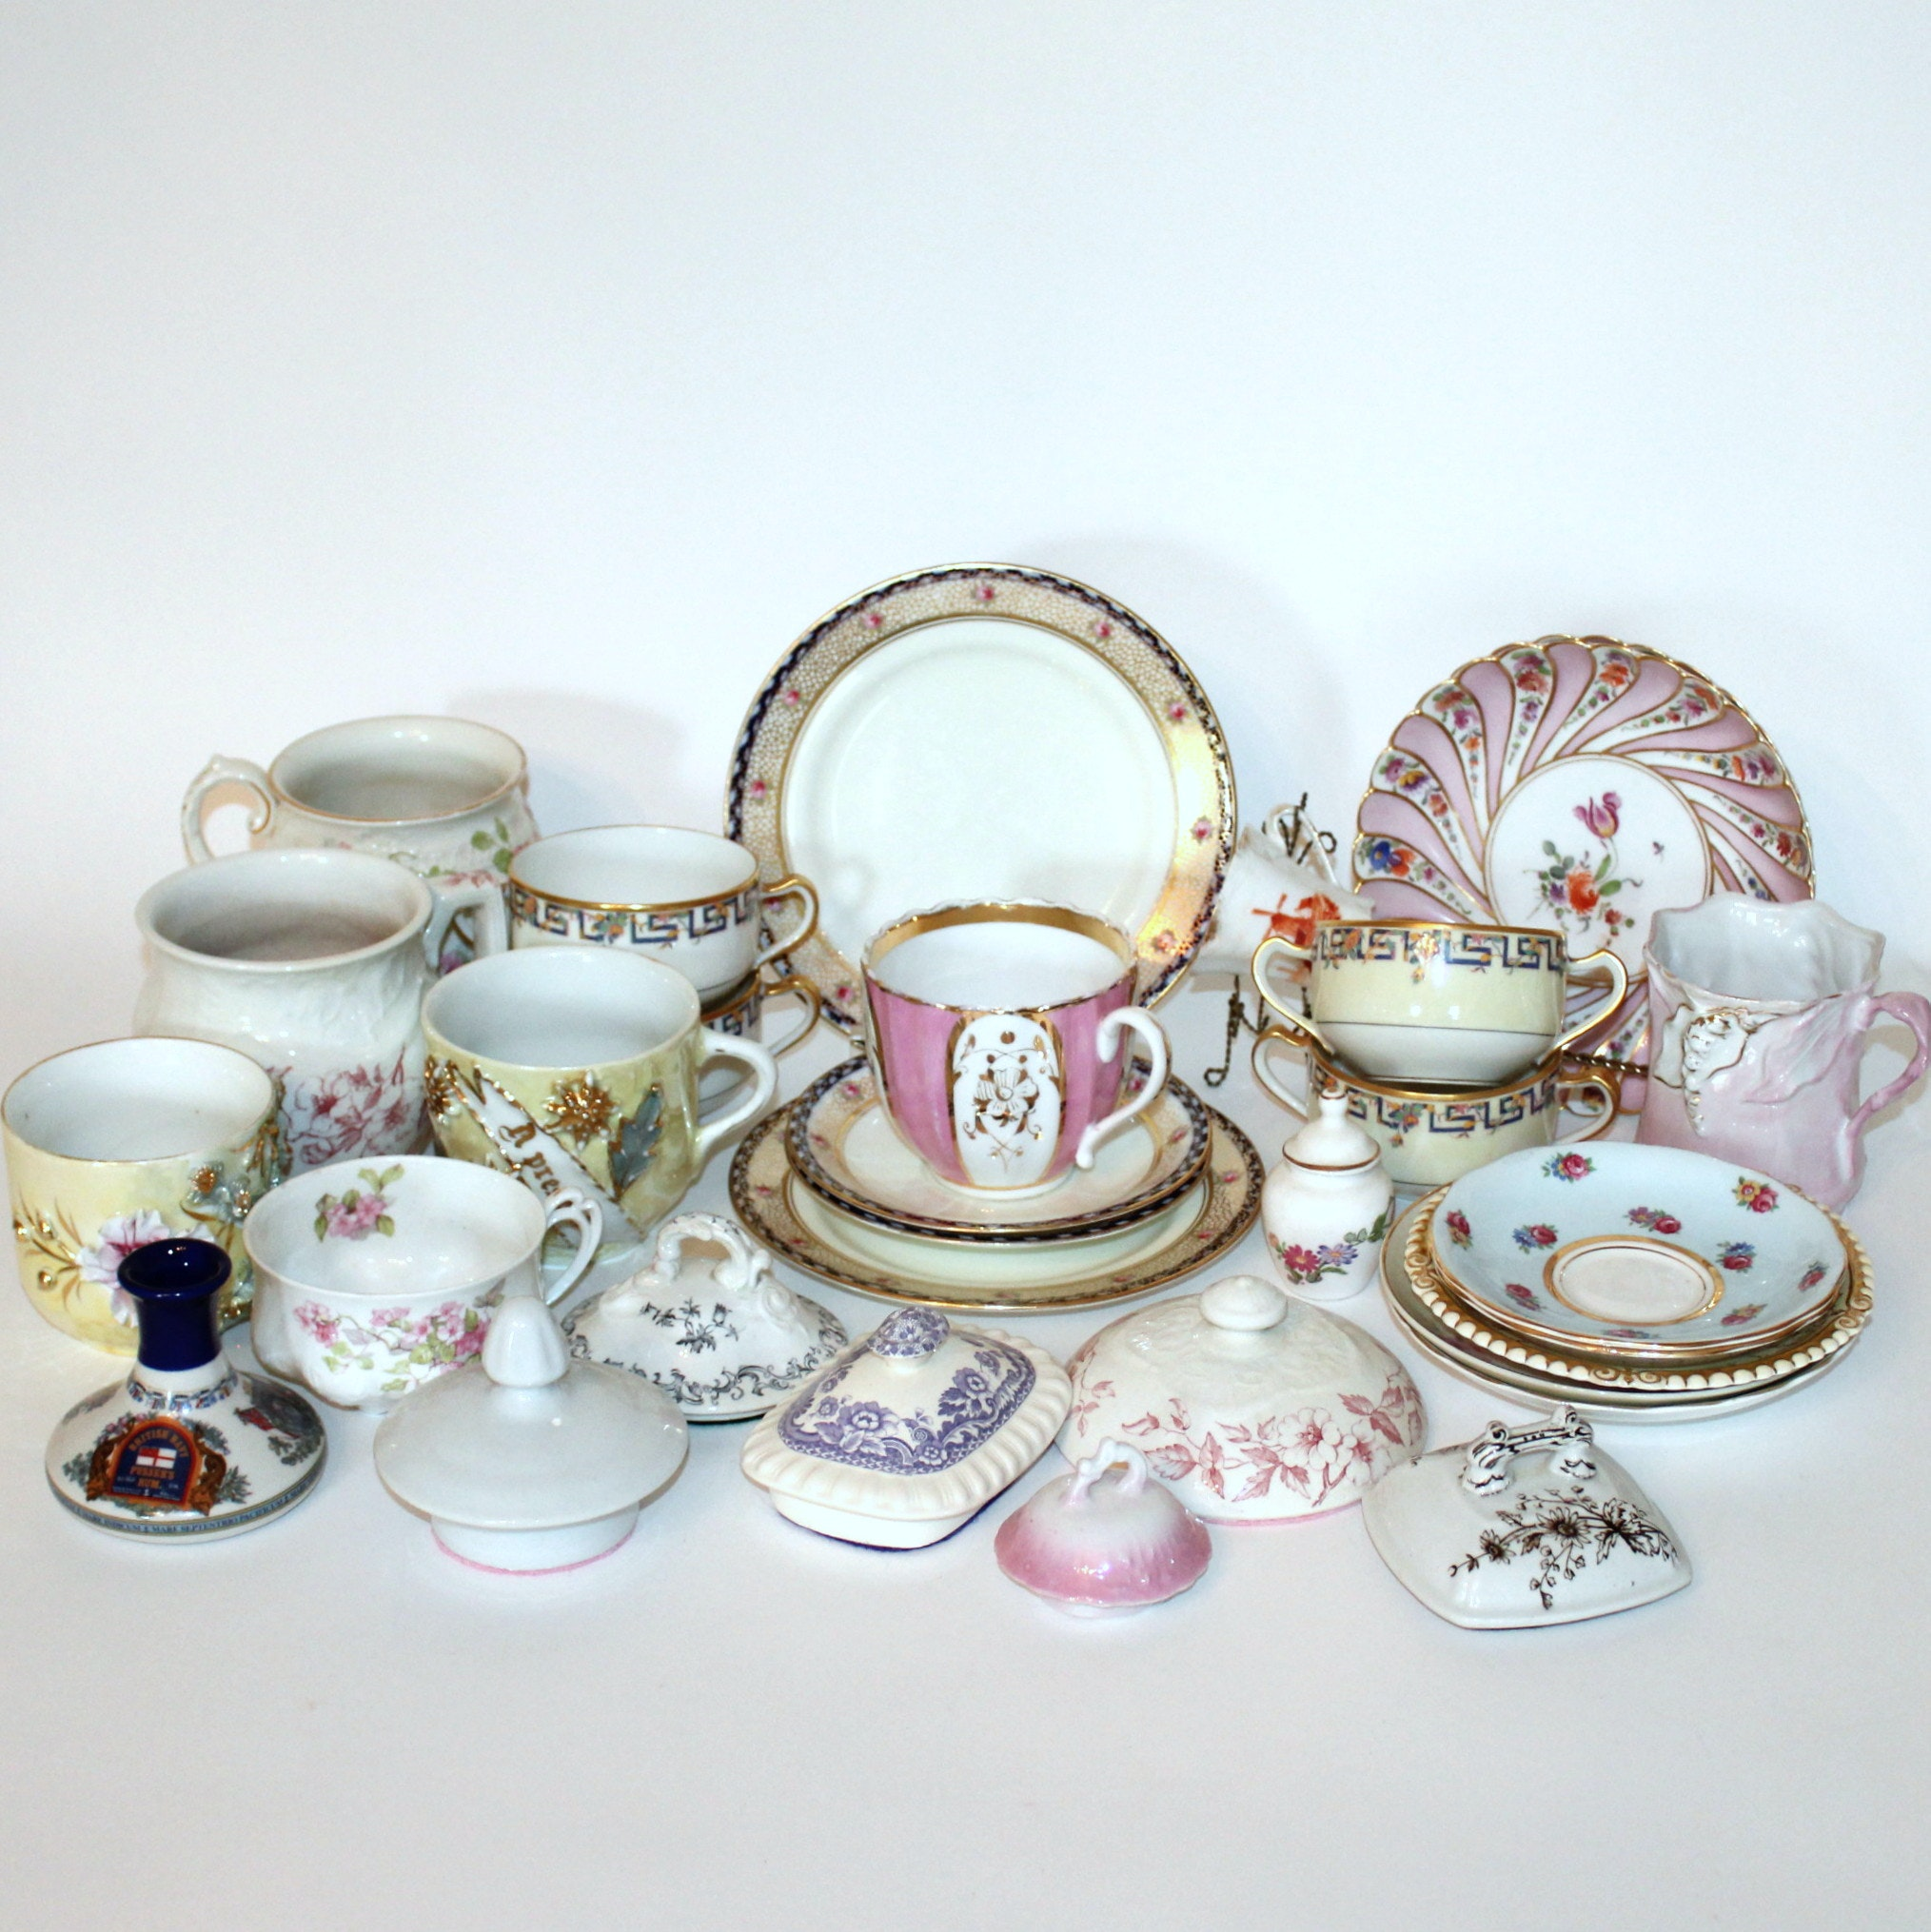 Assortment of Vintage and Antique Mismatched China